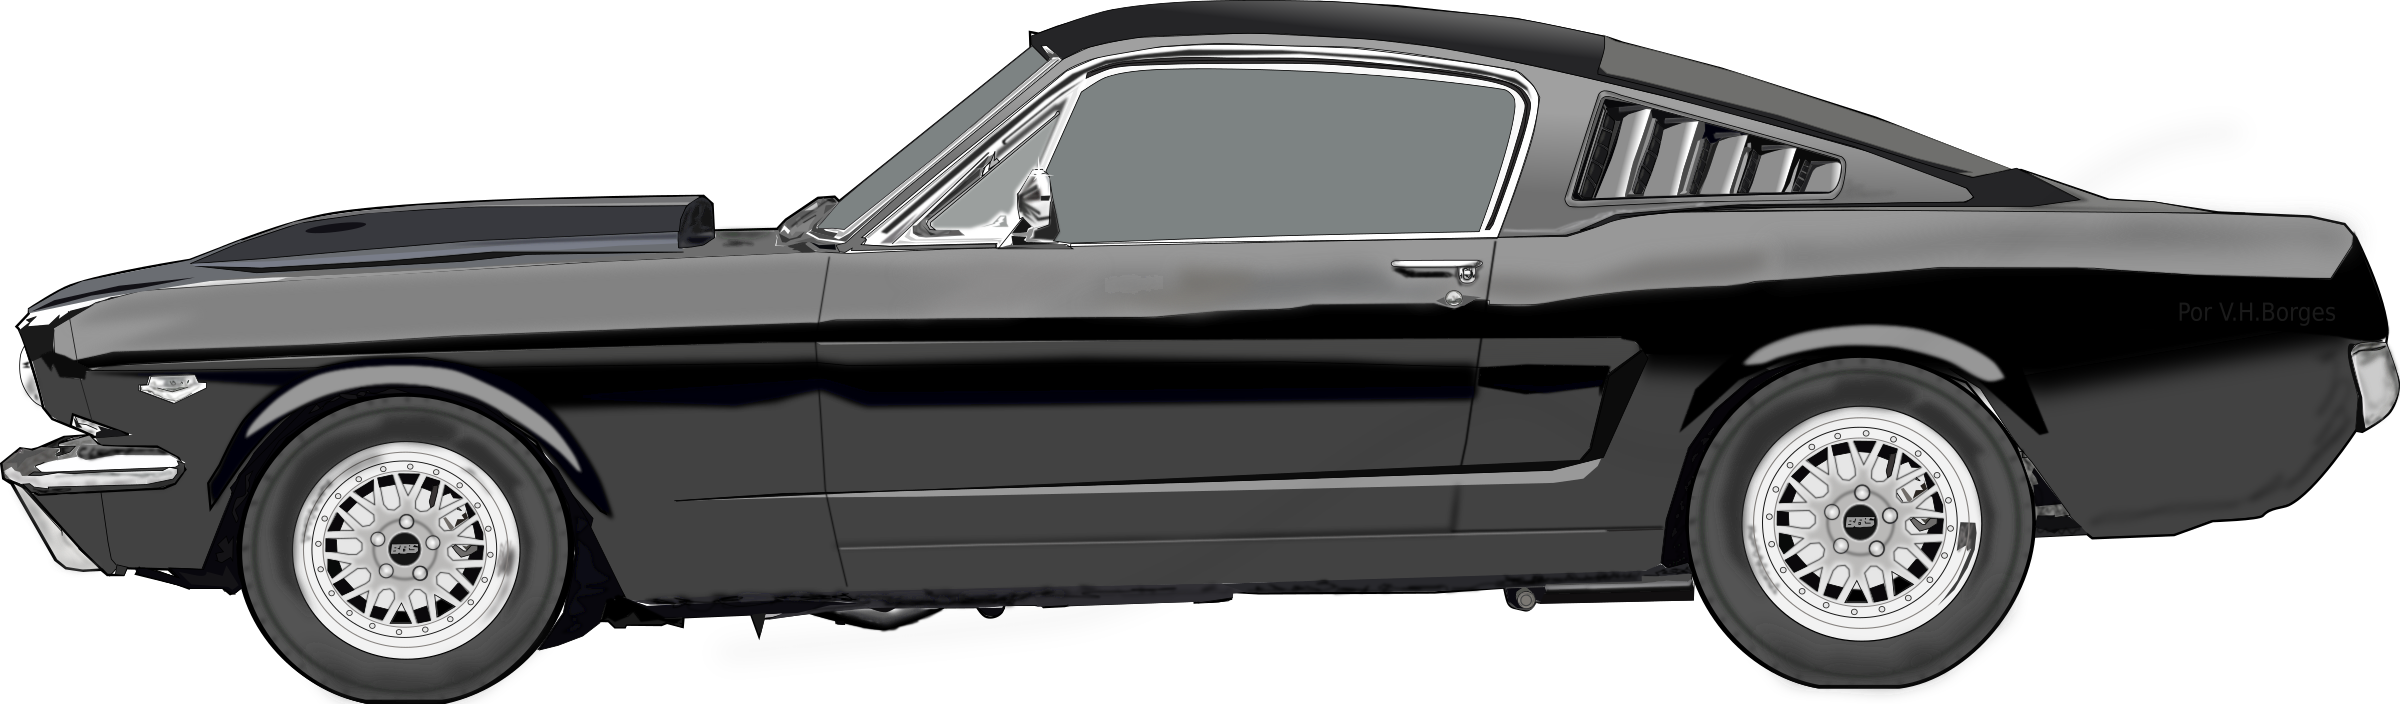 Mustang clipart side. Ford big image png